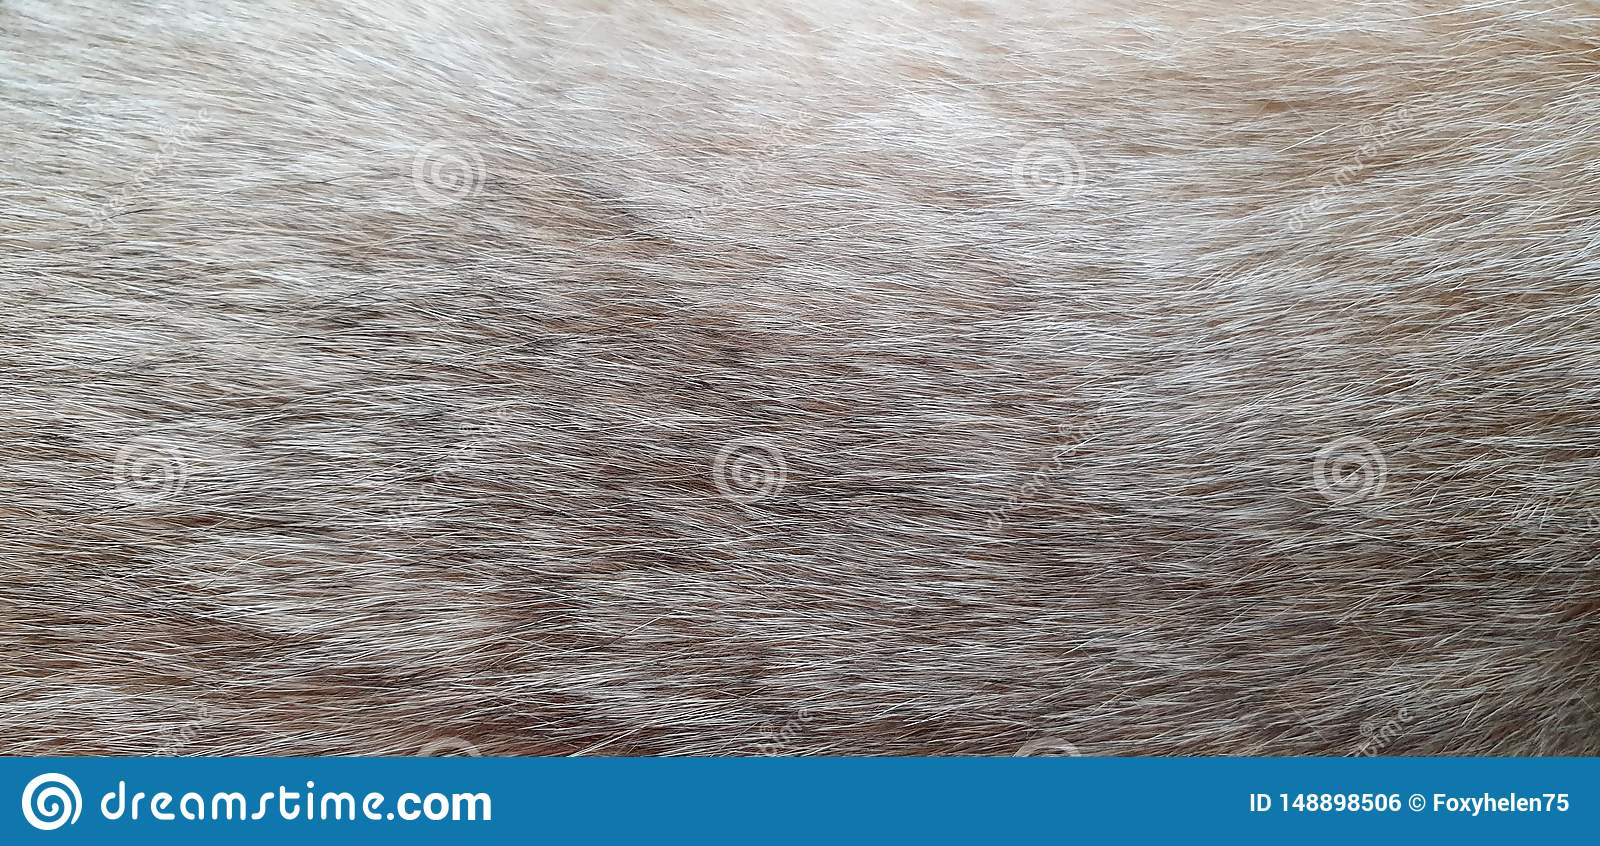 Abstract background, cat fur close up, cat of British breed of gold ticked color, free space for text